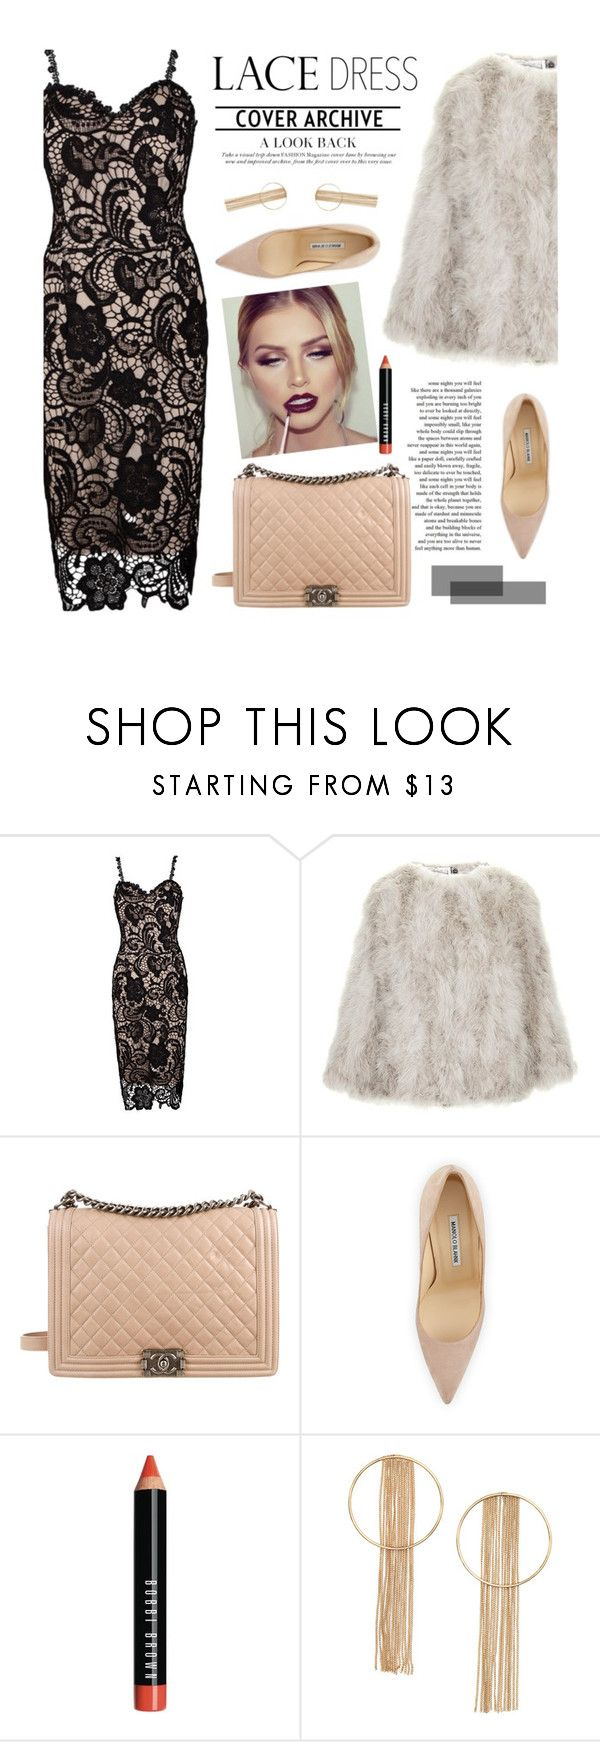 """""""Lace dress"""" by merima-kopic ❤ liked on Polyvore featuring Privé, Topshop, Chanel, Manolo Blahnik and Bobbi Brown Cosmetics"""